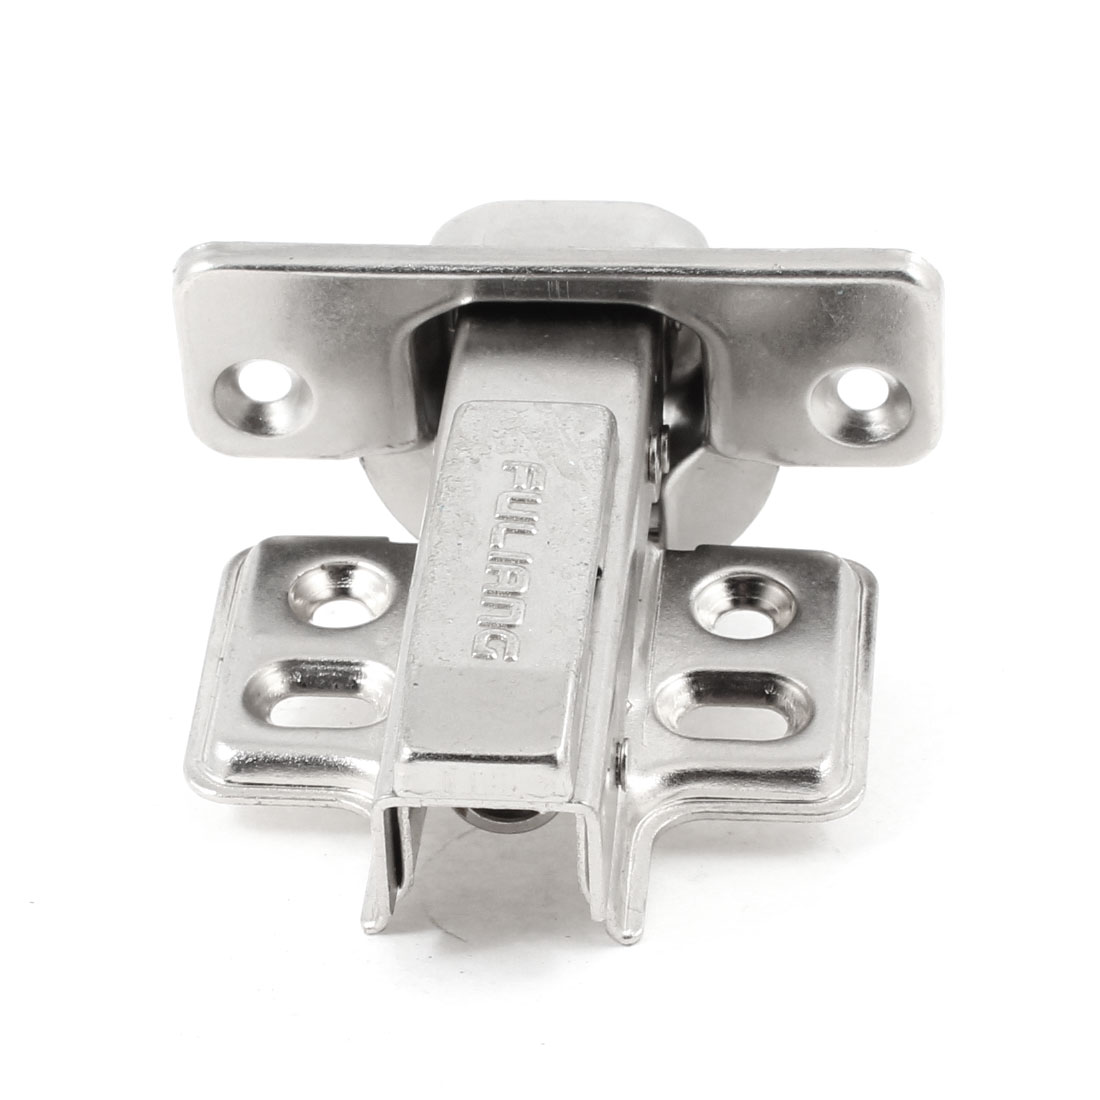 Hardware Part 4.2mm Diameter Mounting Hole Buffer Cabinet Door Hinge Silver Tone